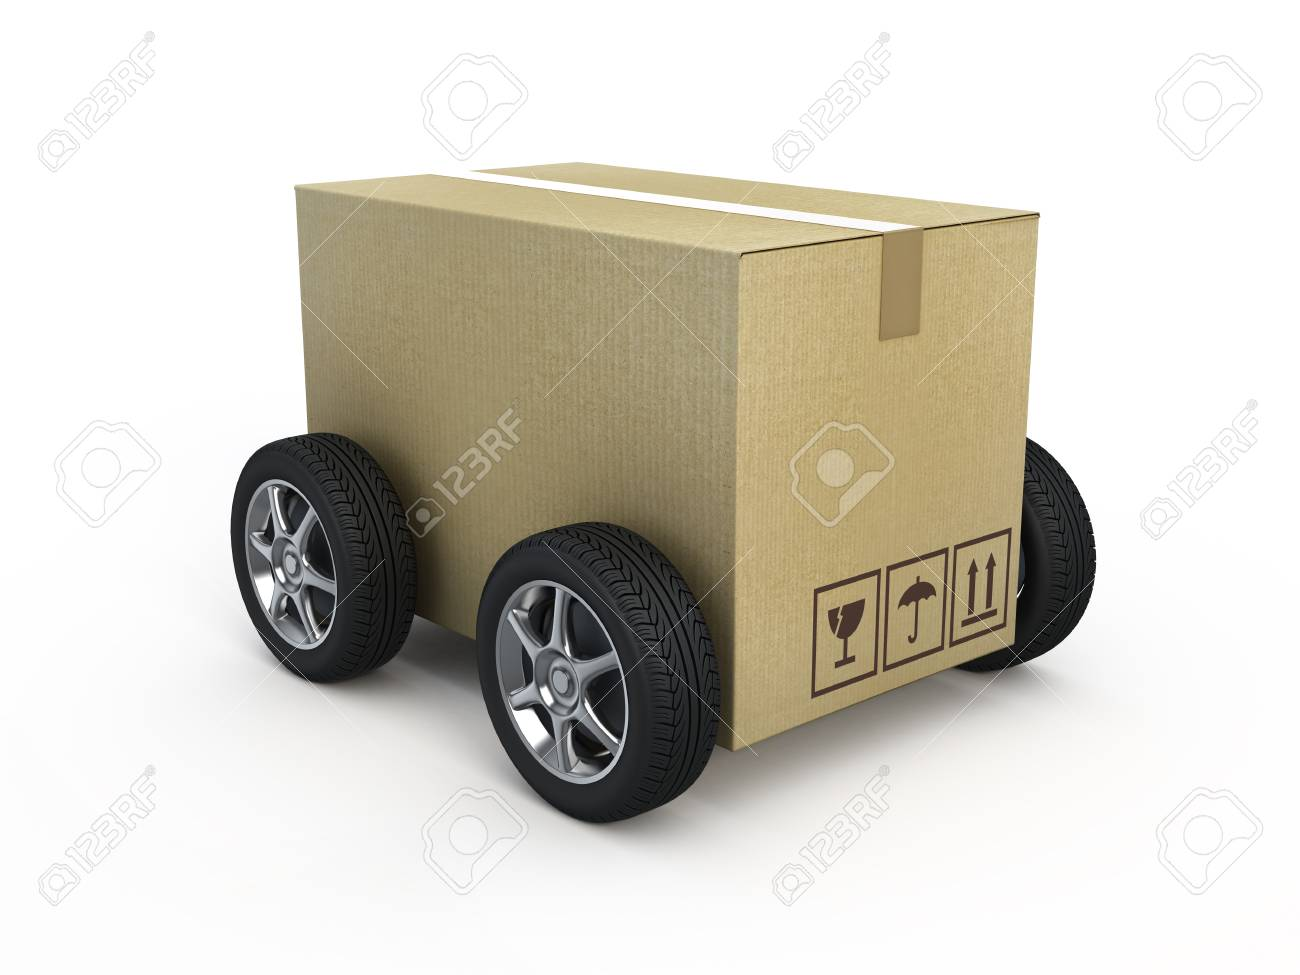 97506653-cardboard-box-with-wheels-shipping-concept.jpg